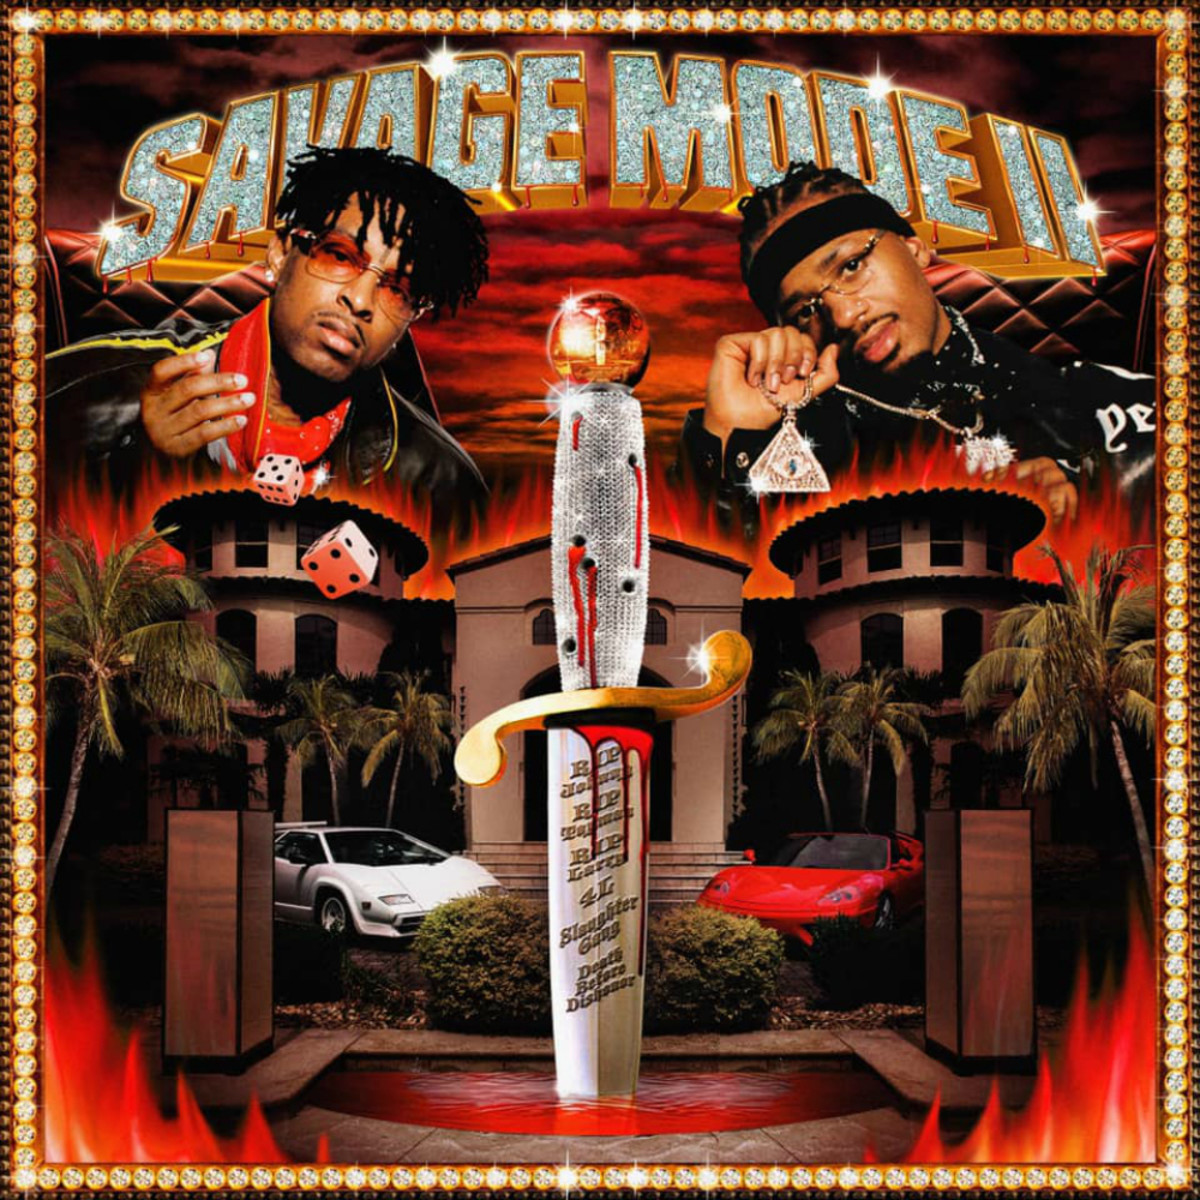 21 Savage and Metro Boomin Level Up in Savage Mode II